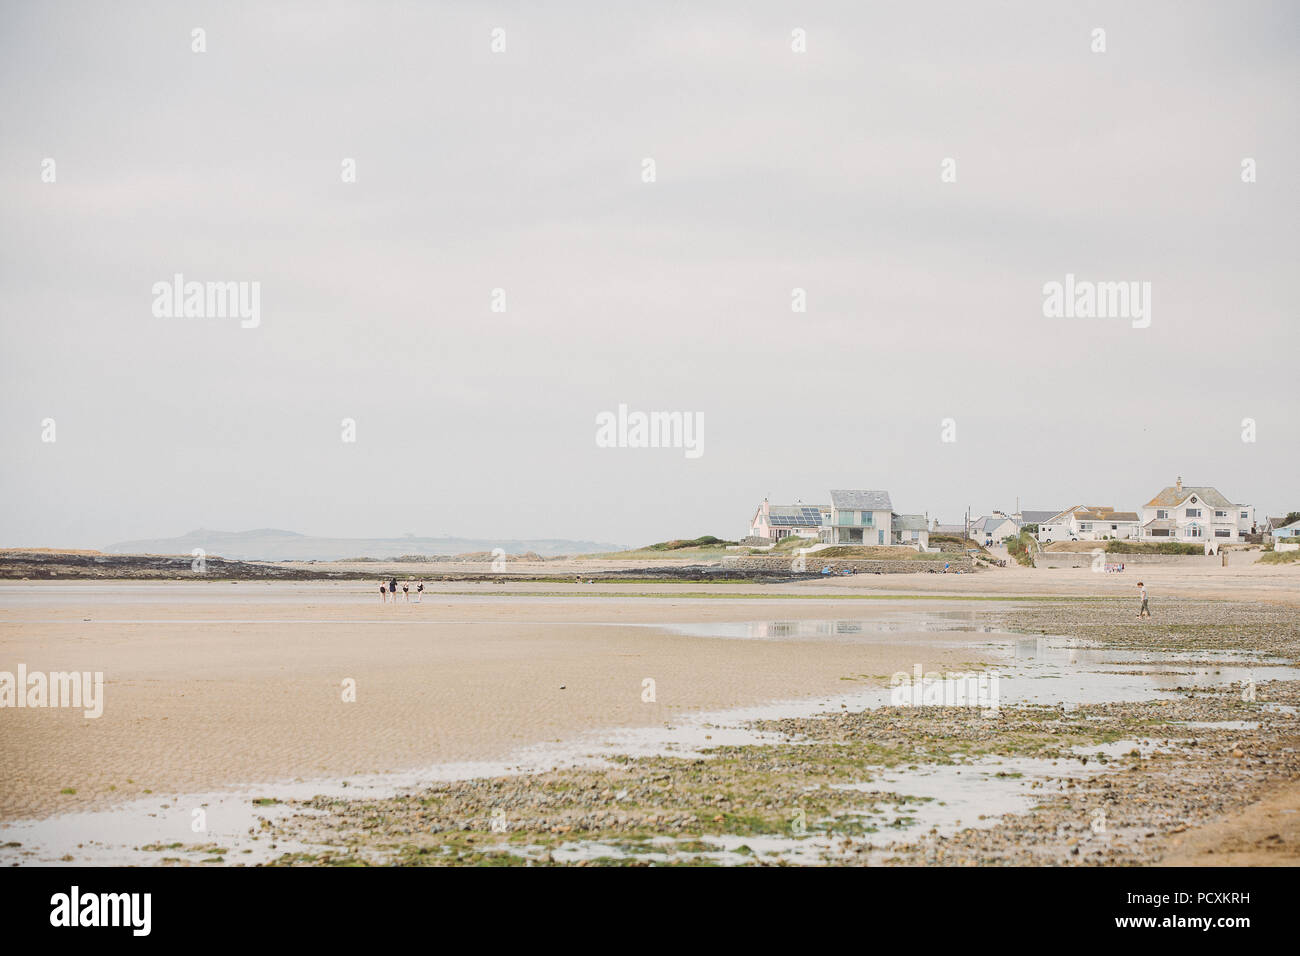 Houses on Broad Beach, Traeth Llydan, Rhosneigr, Anglesey, North Wales, UK - Stock Image